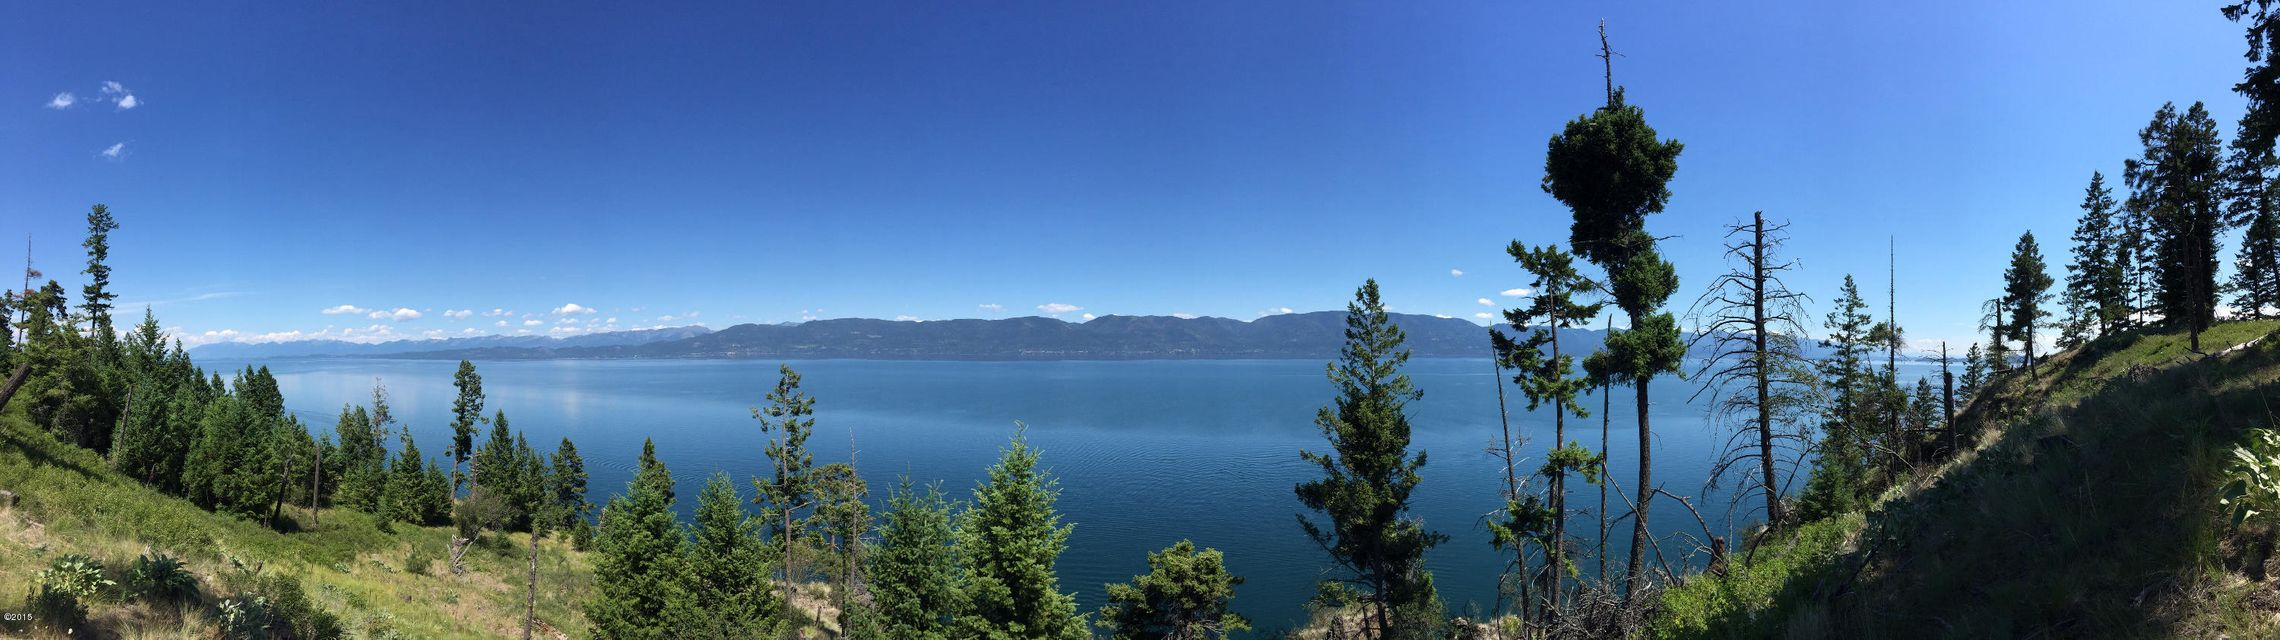 Land for Sale at West Shore Flathead Lake West Shore Flathead Lake Rollins, Montana 59931 United States